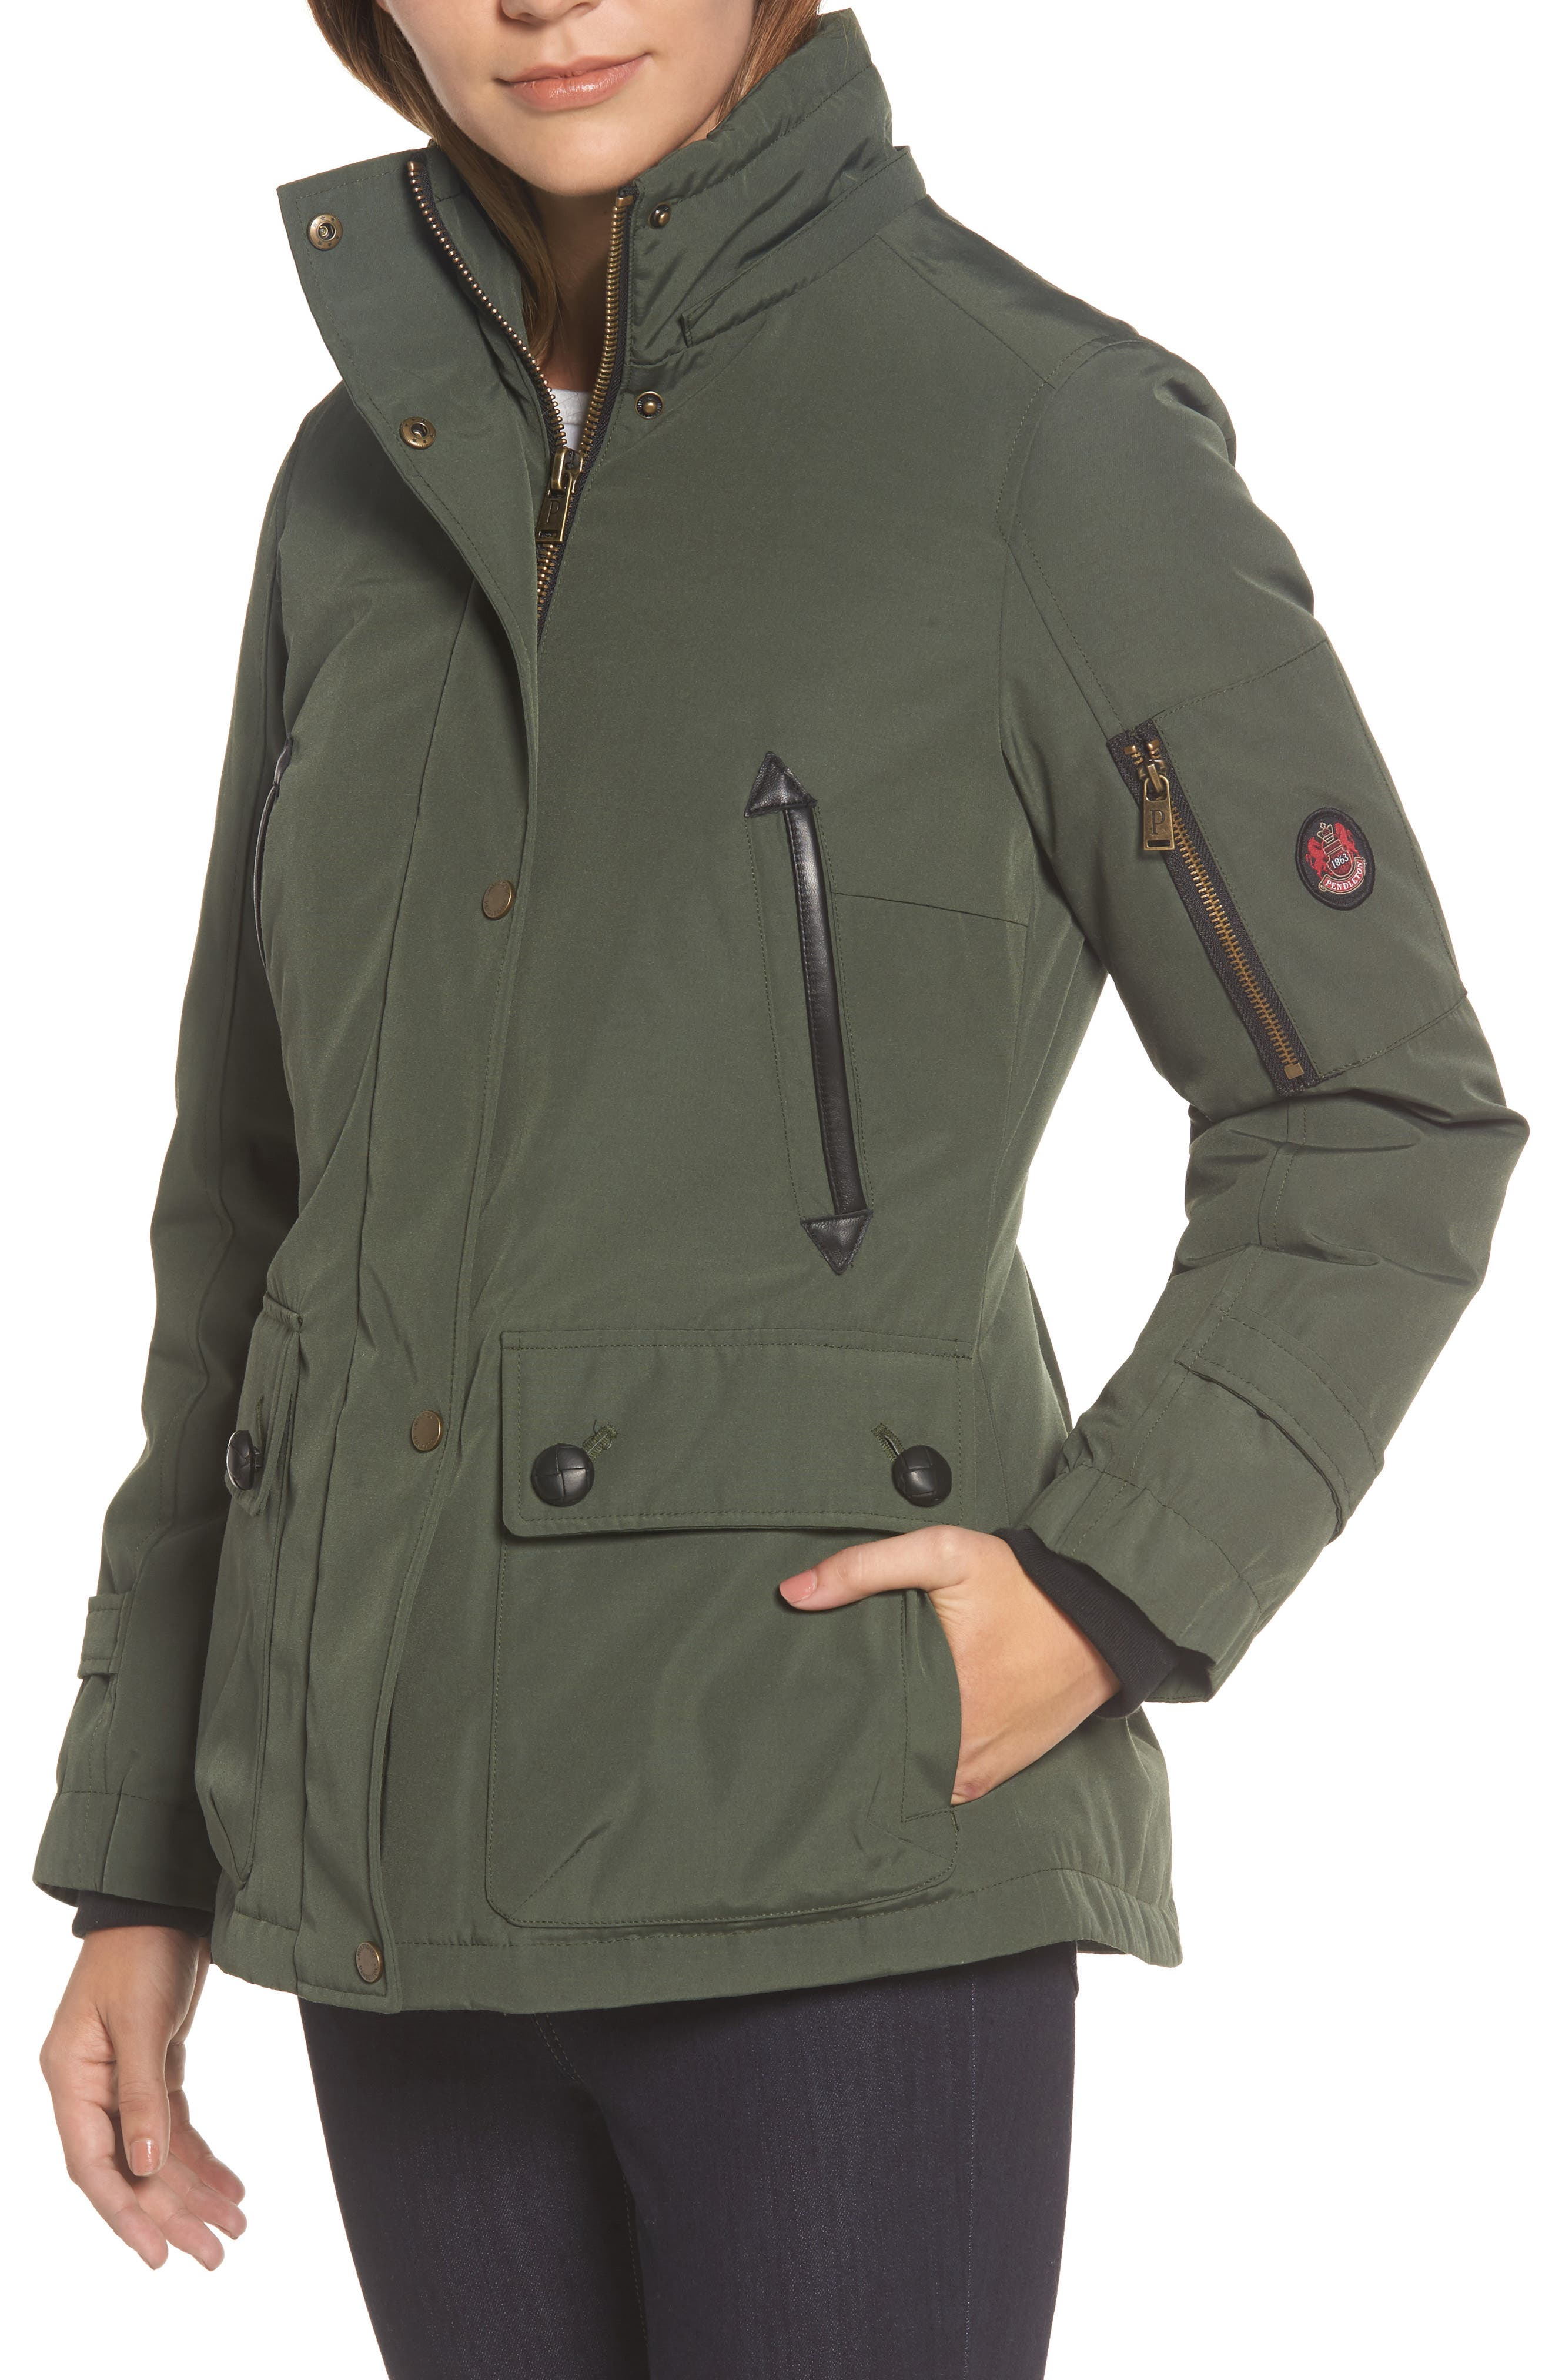 Bachelor Water Repellent Hooded Down Parka with Genuine Coyote Fur Trim,                             Alternate thumbnail 4, color,                             Olive